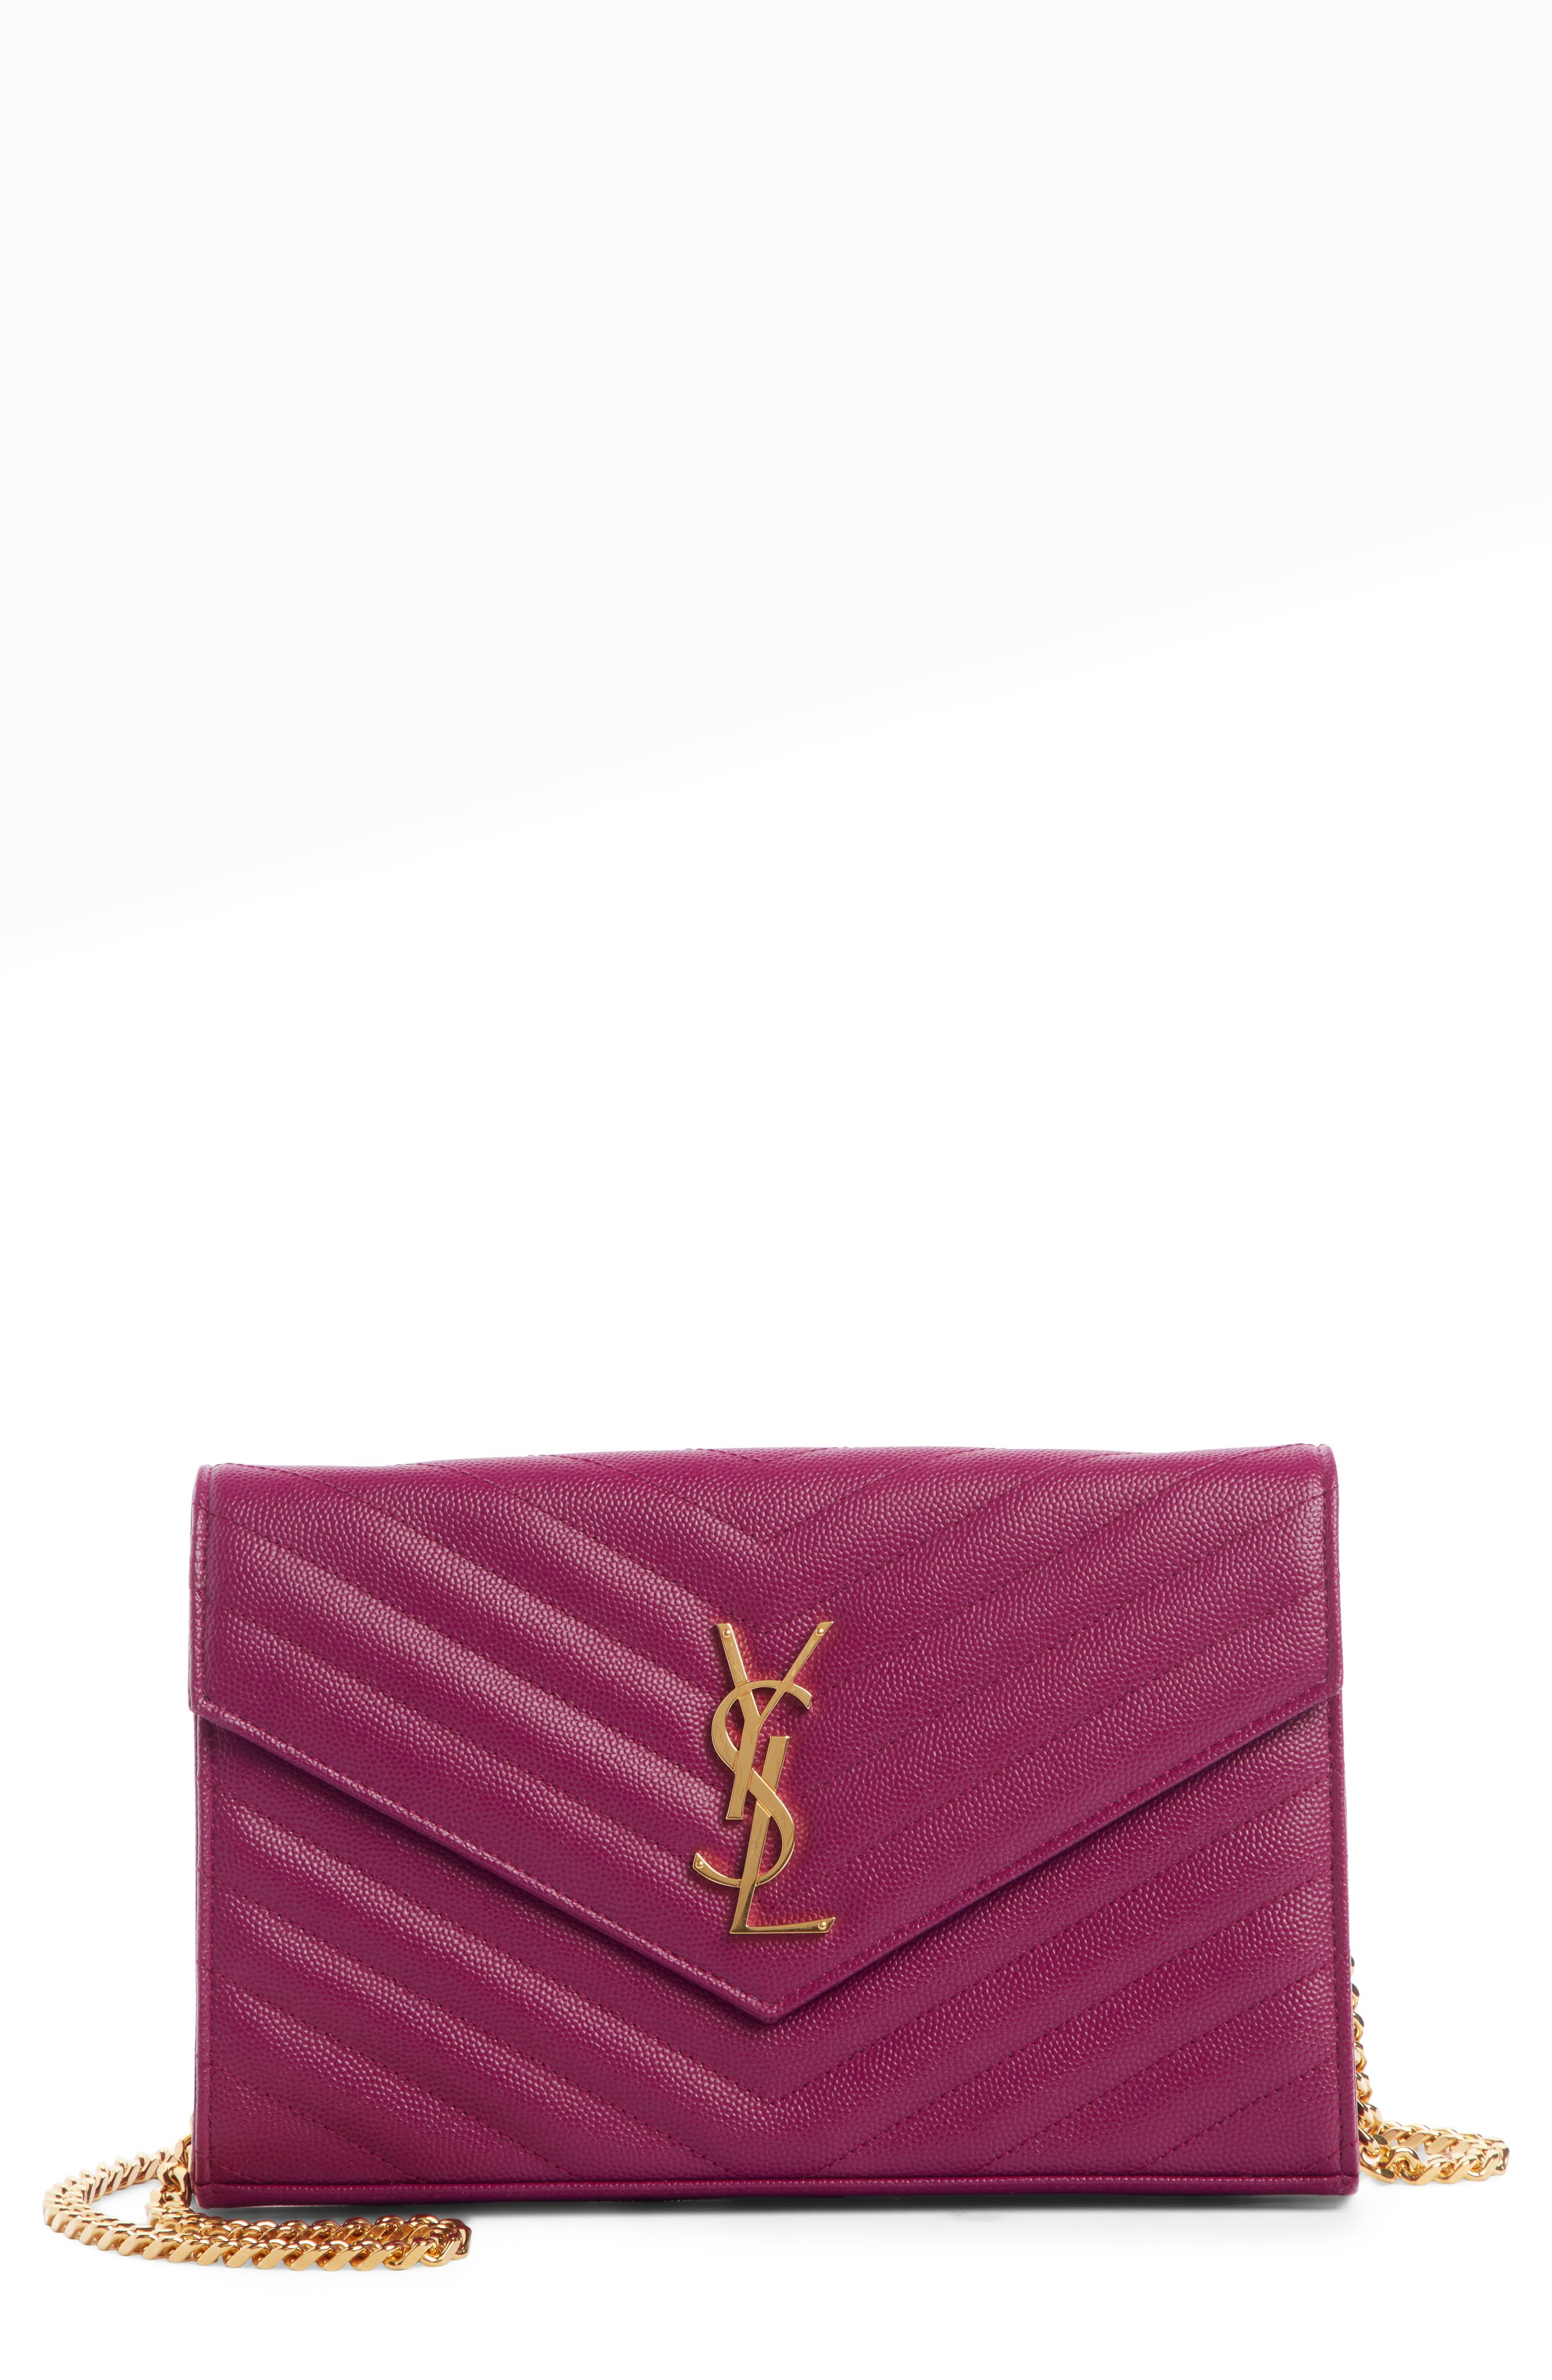 SAINT LAURENT,                             Large Monogram Quilted Leather Wallet on a Chain,                             Main thumbnail 1, color,                             DARK GRAPE